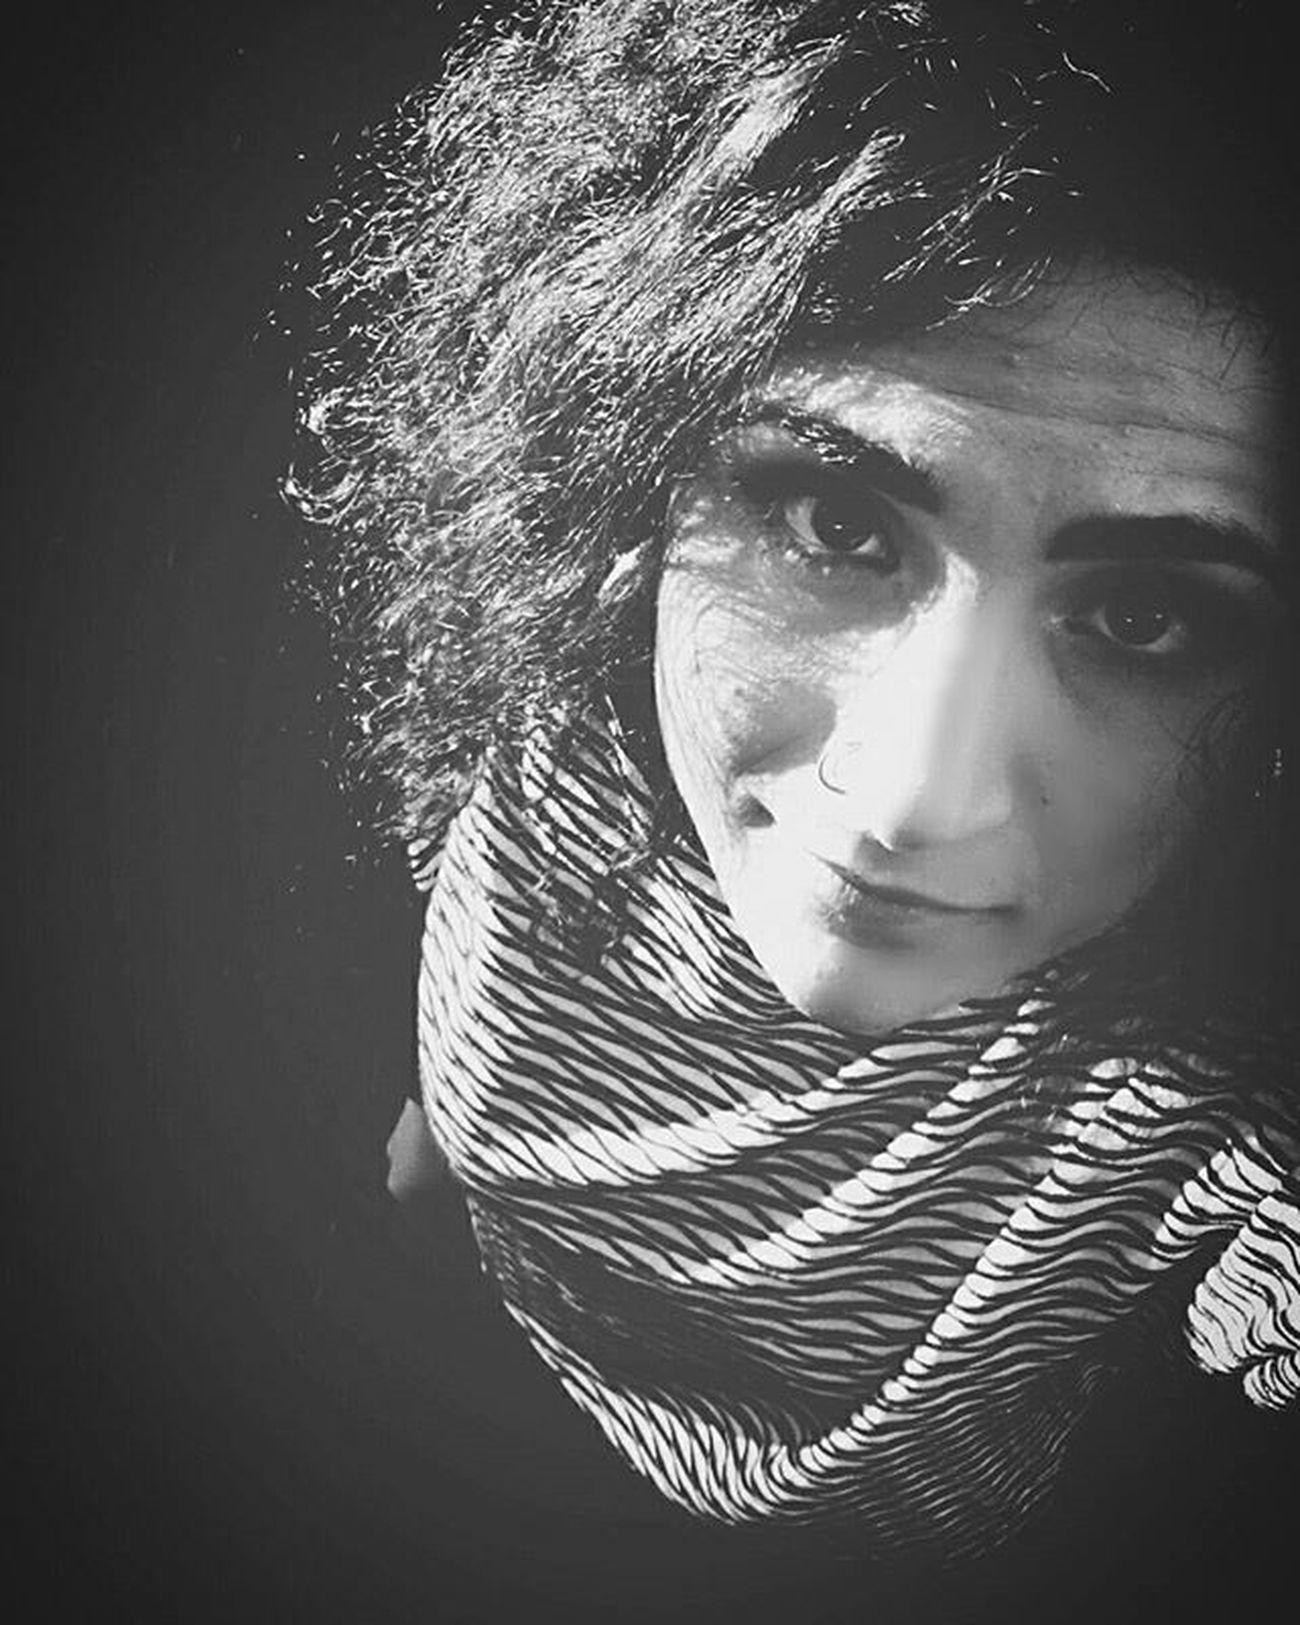 Always look in the eyes life! Eyes Eyebrows Curlyhair Bw Bw_lover Blackandwhite Blackandwhitephotography Blackhair Black White Grey Girl Italiangirl Occhi Sunday Soymix Shadow Shadows